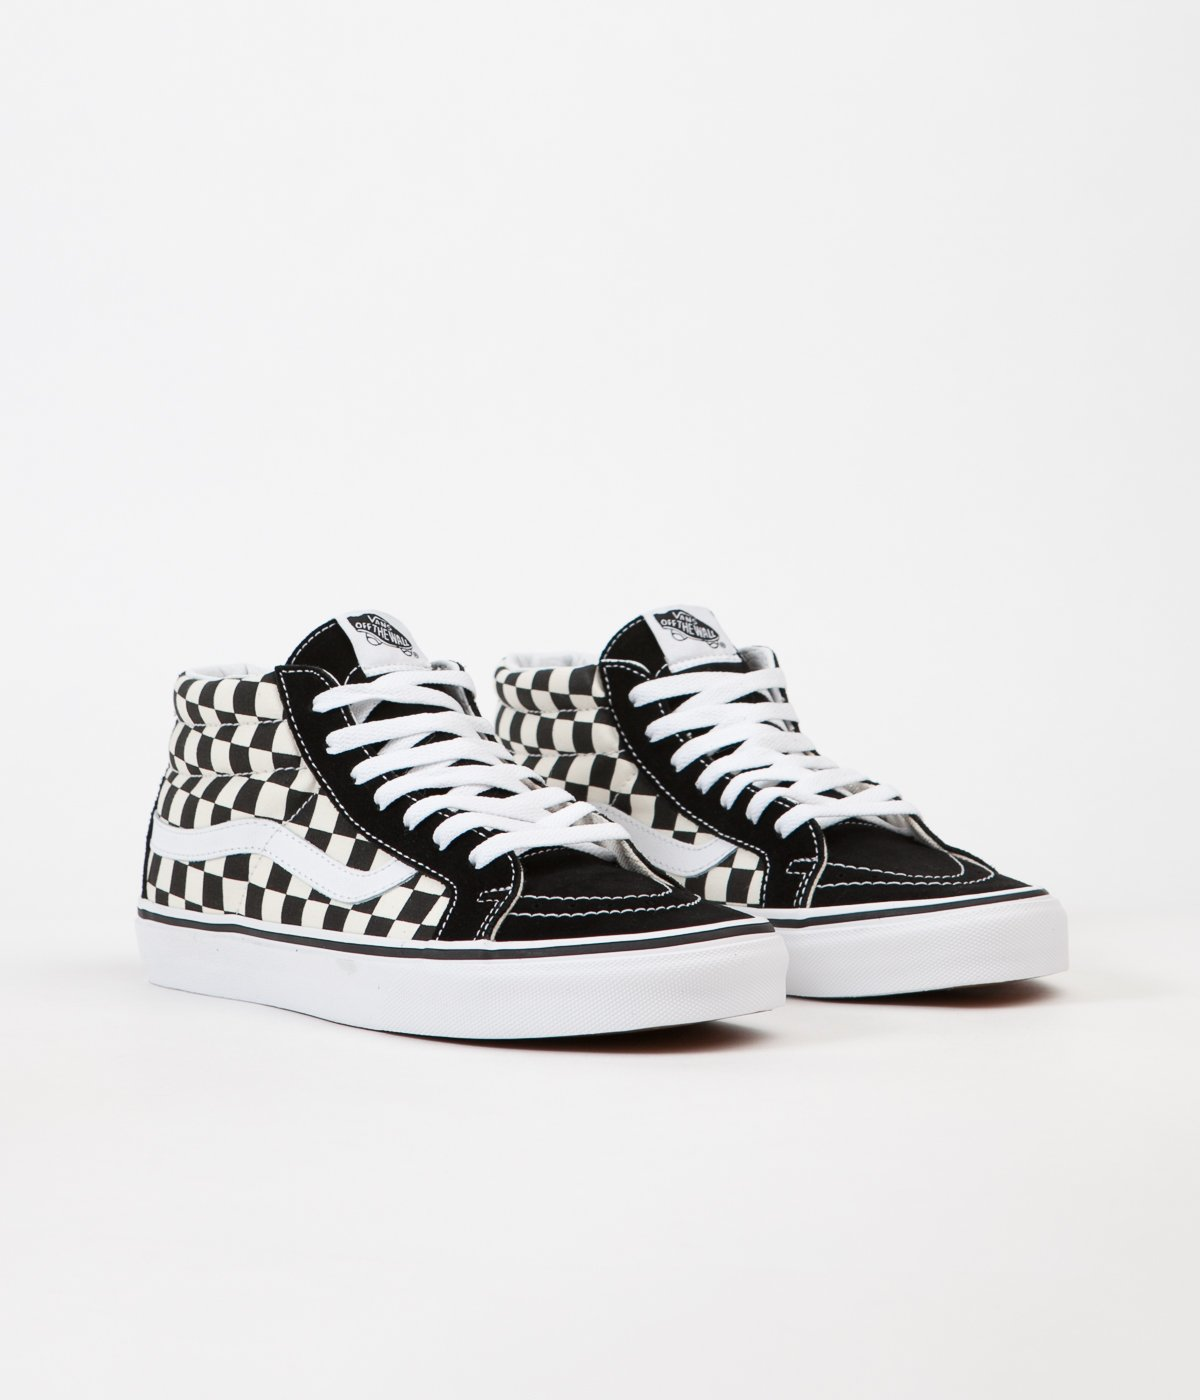 new varieties search for genuine look for Very Goods | Vans Sk8-Mid Reissue Shoes - Checkerboard ...